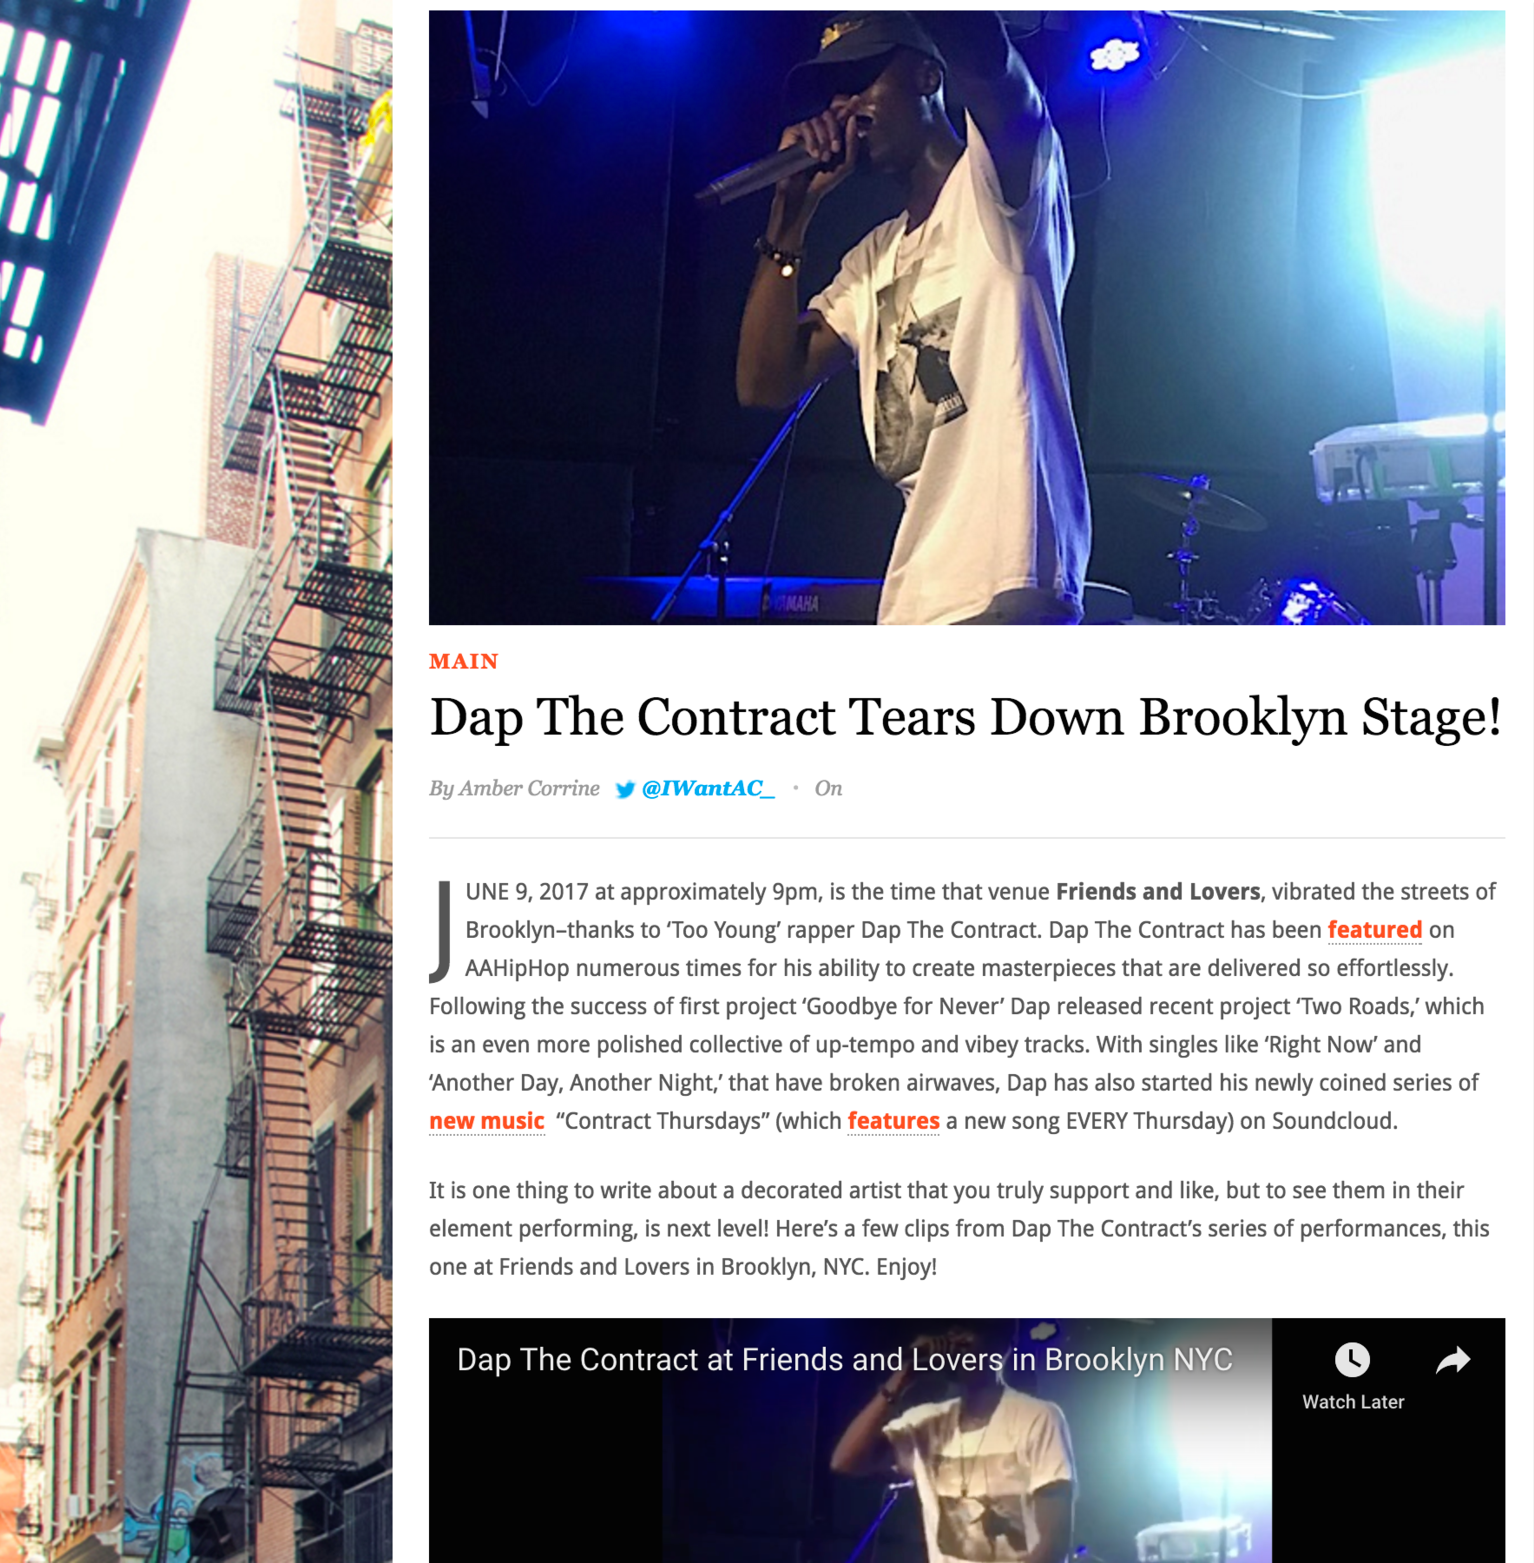 http://aboveaveragehiphop.com/dap-the-contract-tears-down-nyc-show/